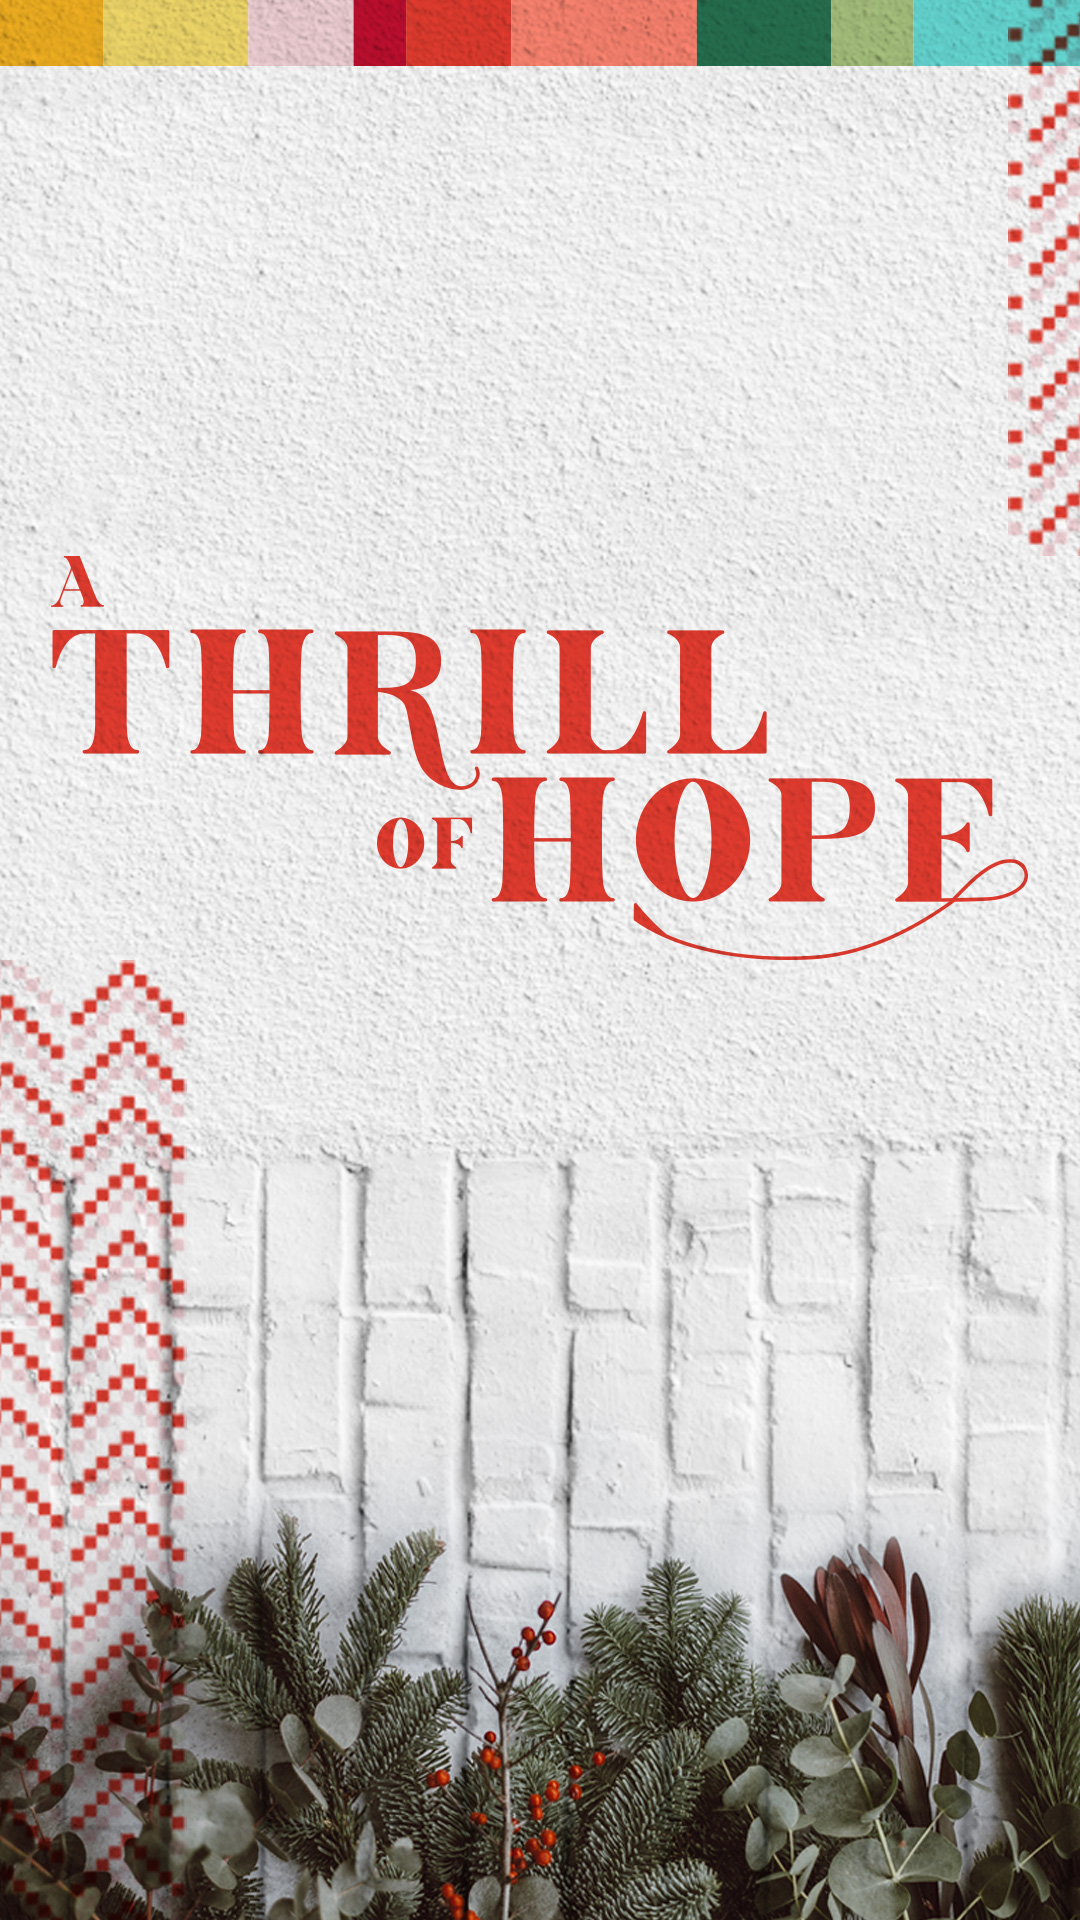 A Thrill of Hope Shareable Instagram Story 2